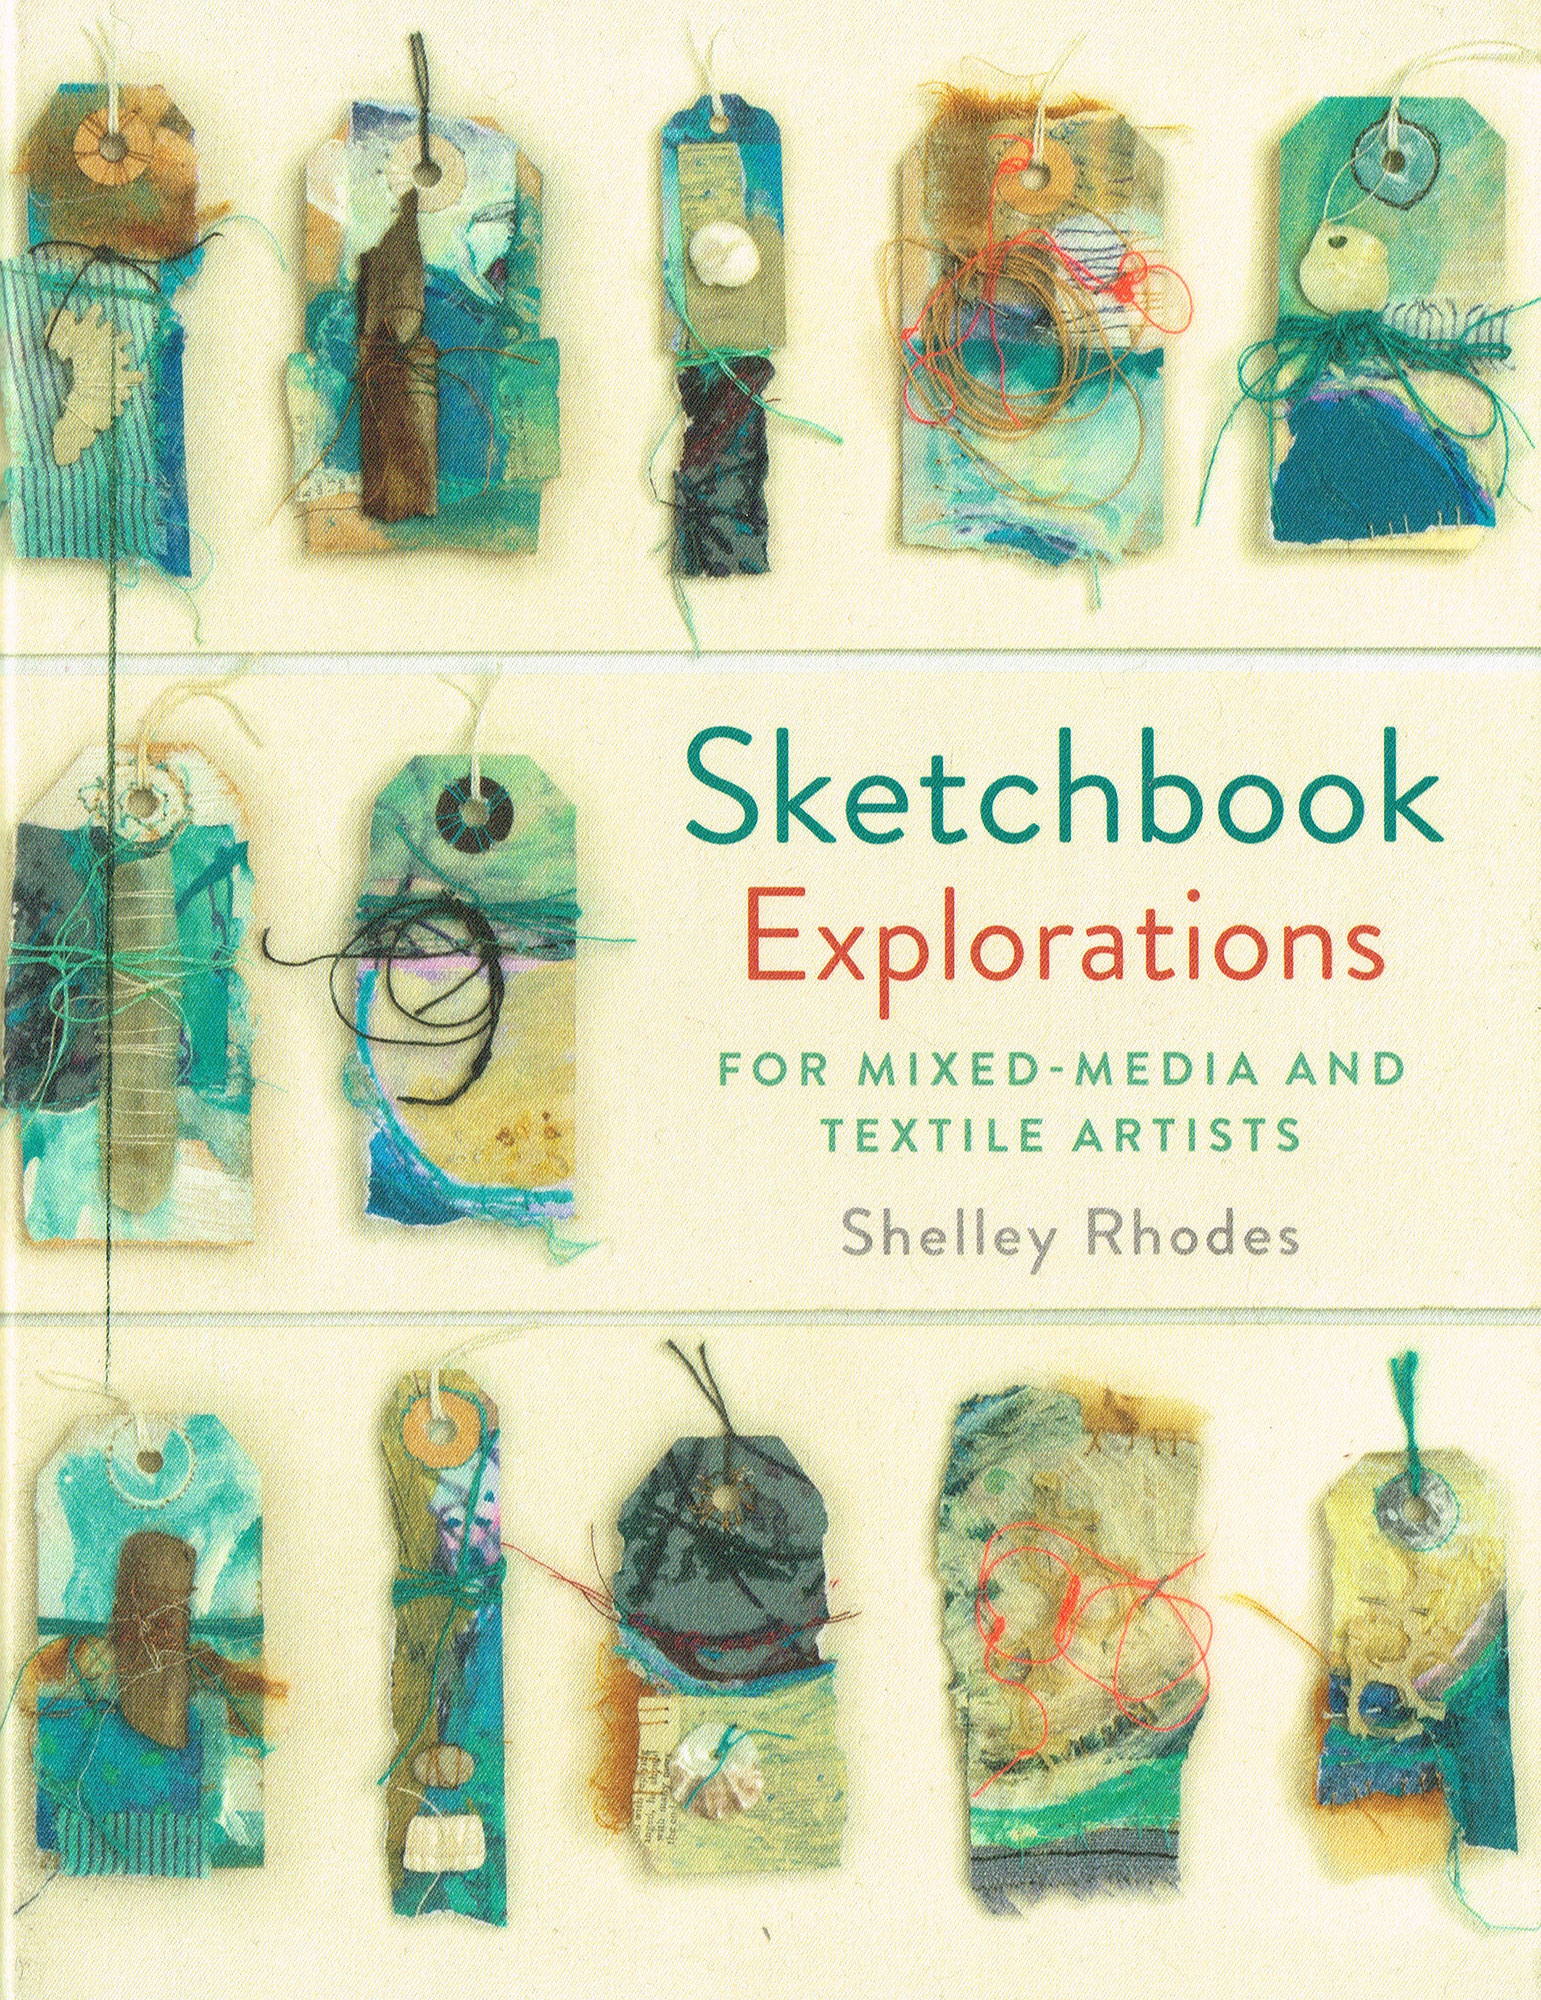 Sketchbook Explorations for mixed media and textile artists